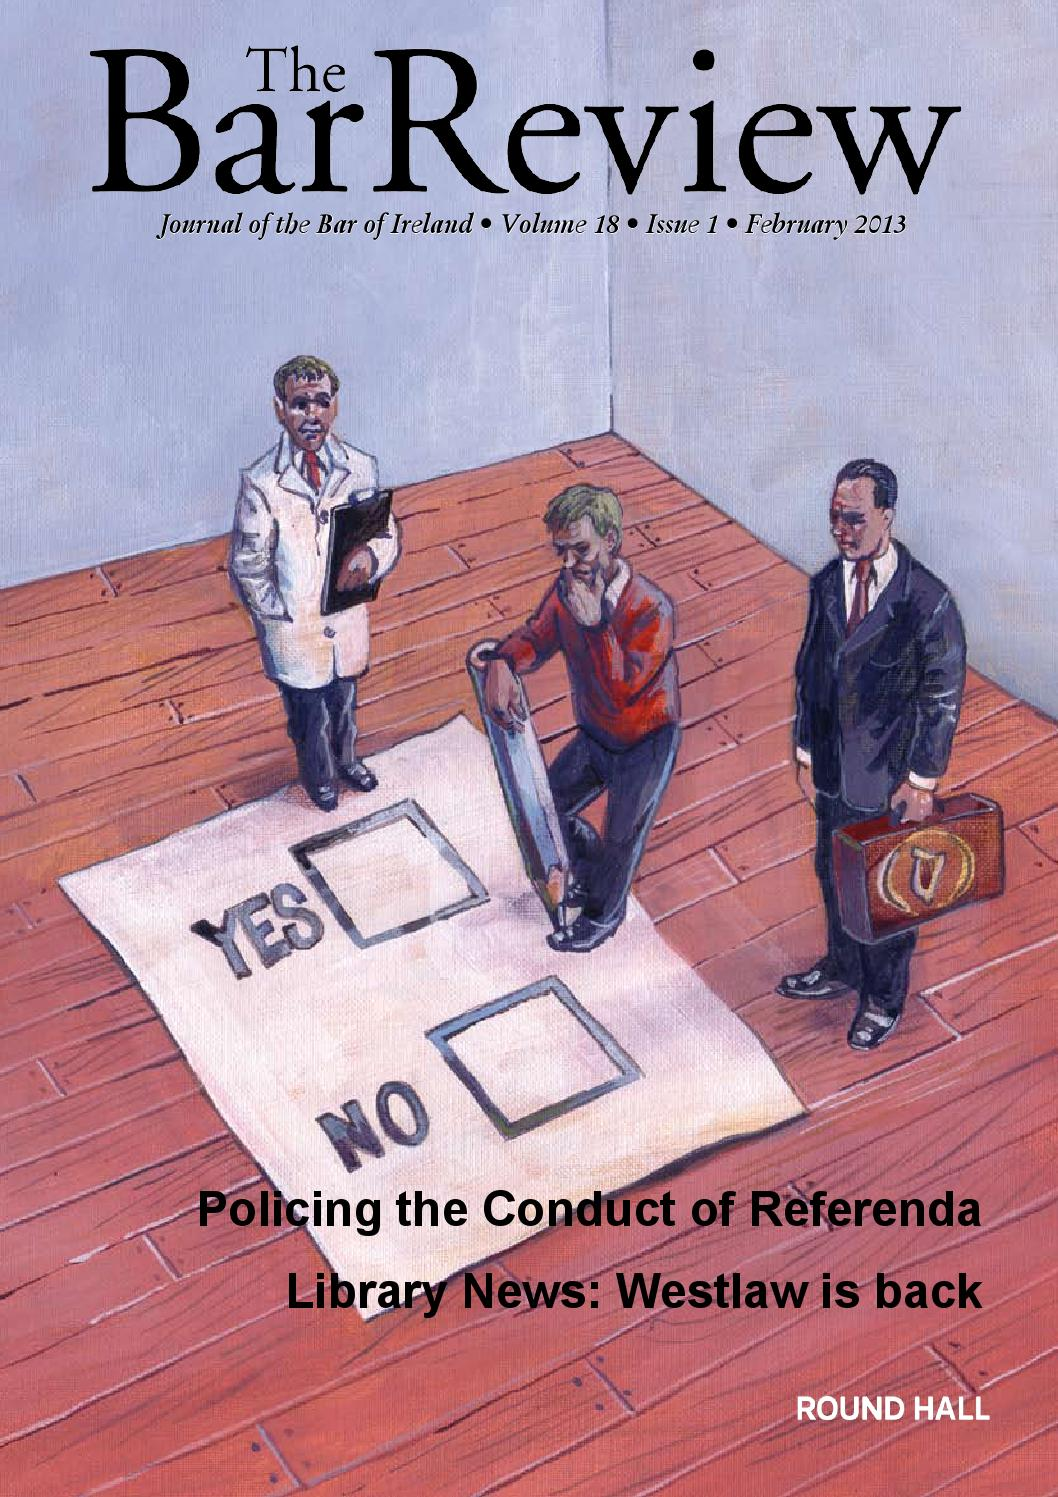 reform act essays The constitutional reform act 2005 for the first time in almost 900 years, judicial independence is now officially enshrined in law the key changes brought in by the act include:.